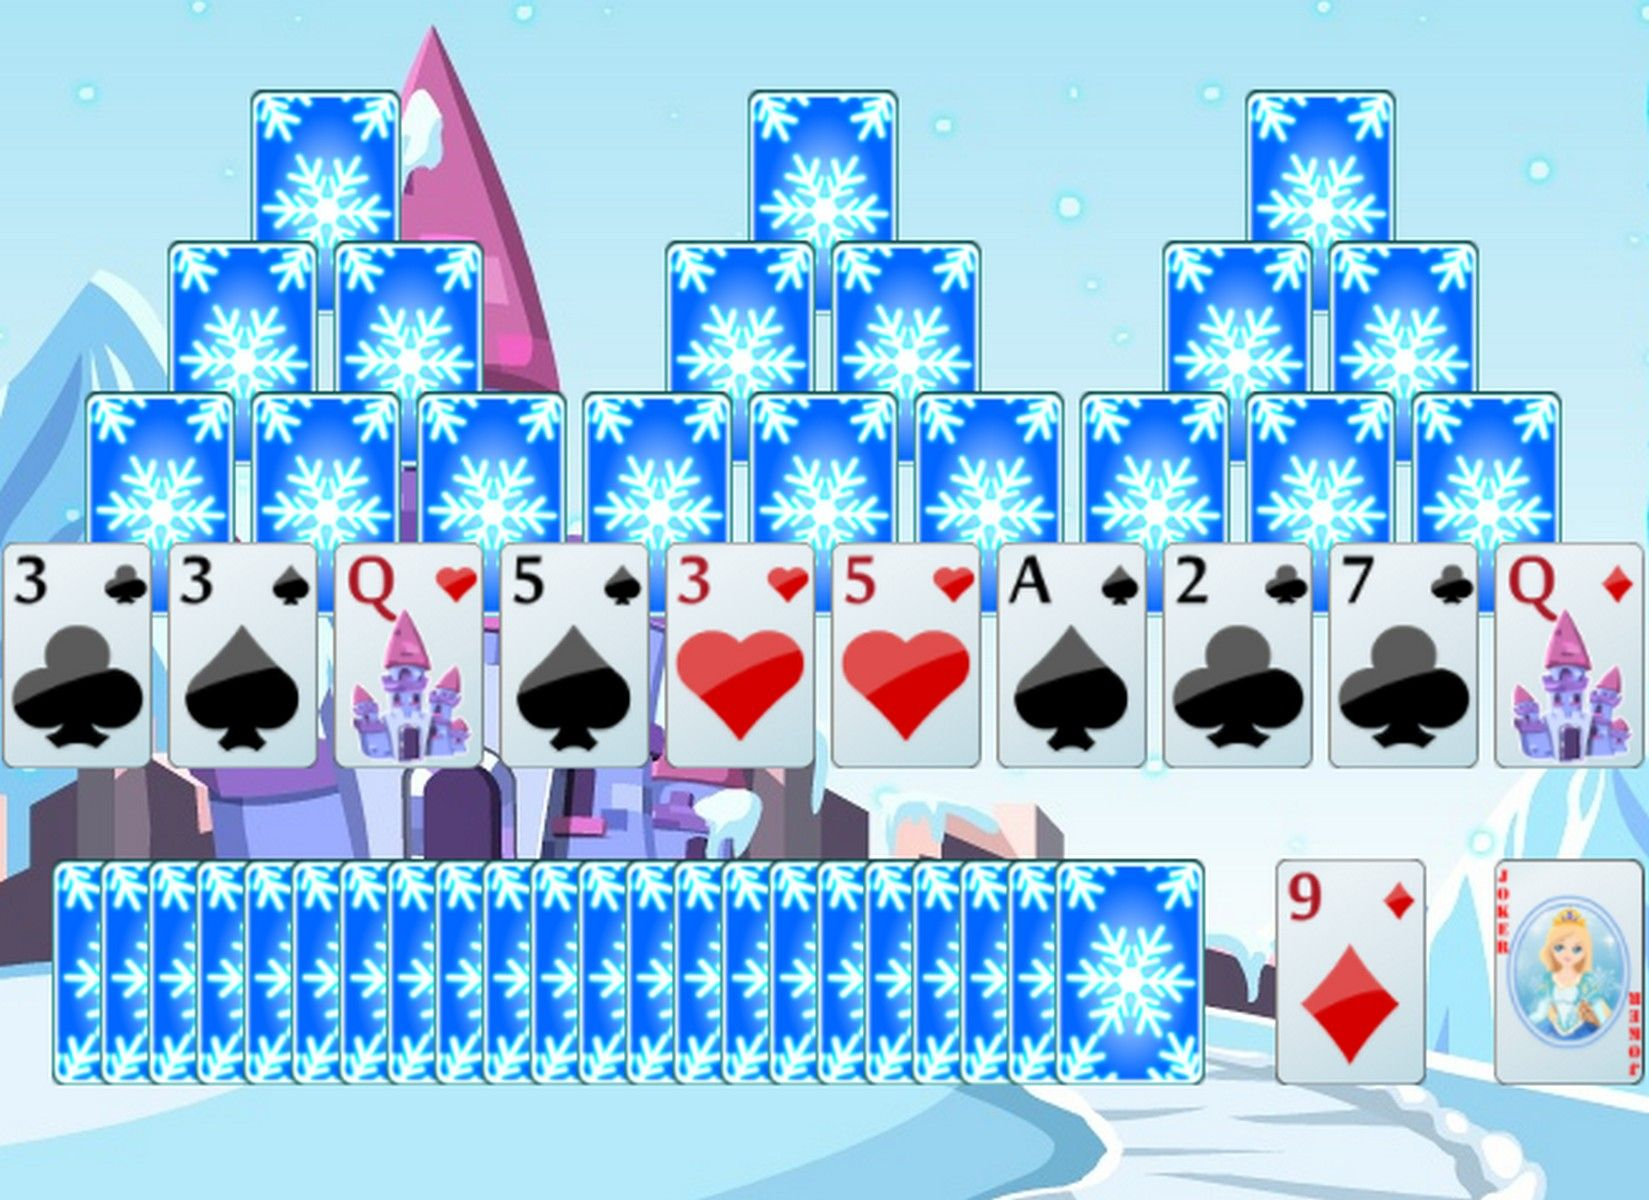 Pin on Solitaire Boardgames